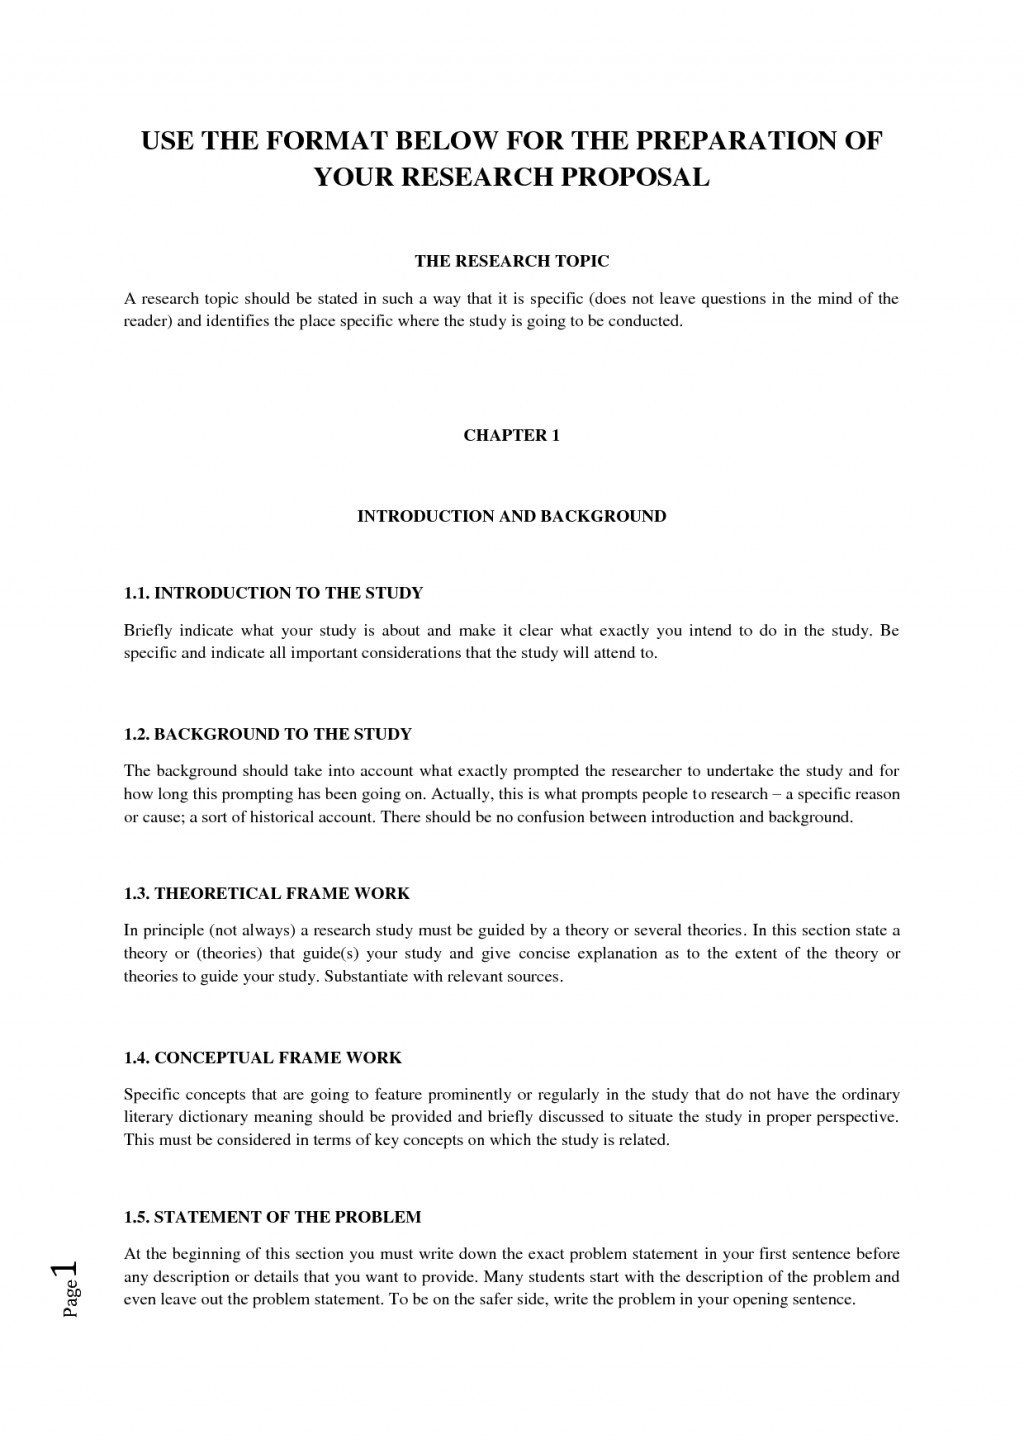 009 Awesome Collection Of Science Research Proposal Format Sample Wonder Essay Persuasive Thesis Statement Examples Paper How To Shocking Write A For Large